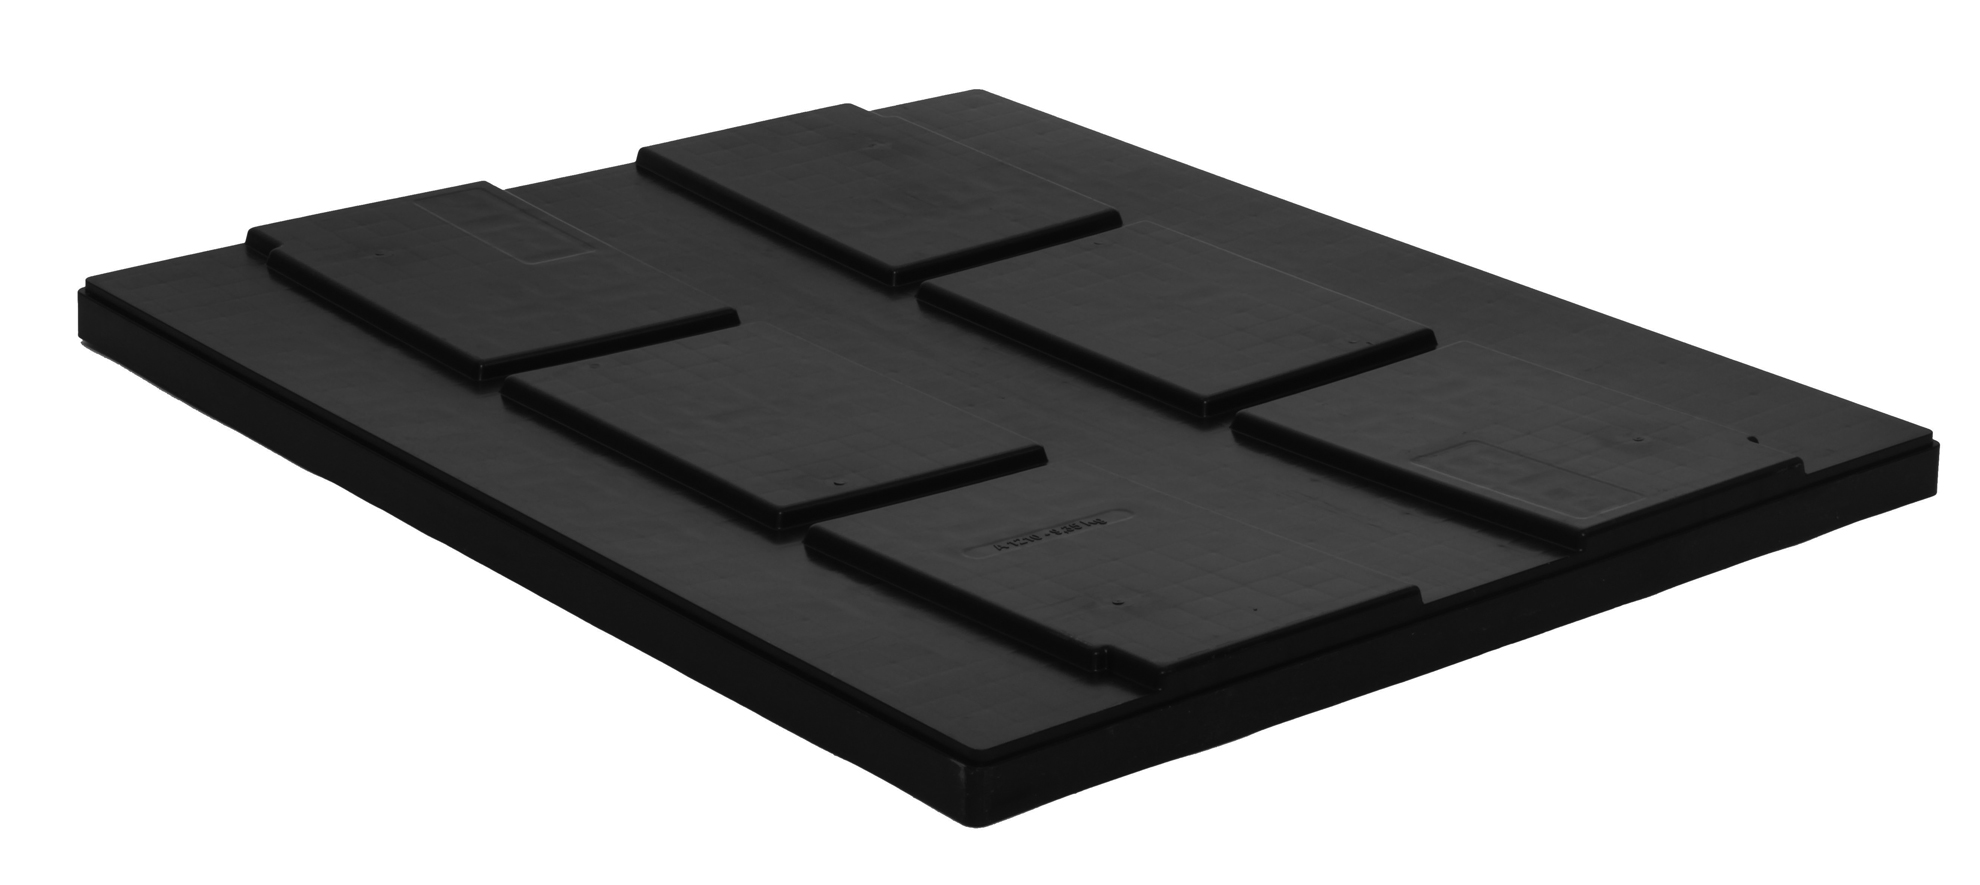 esd-safe covers and lids for klts